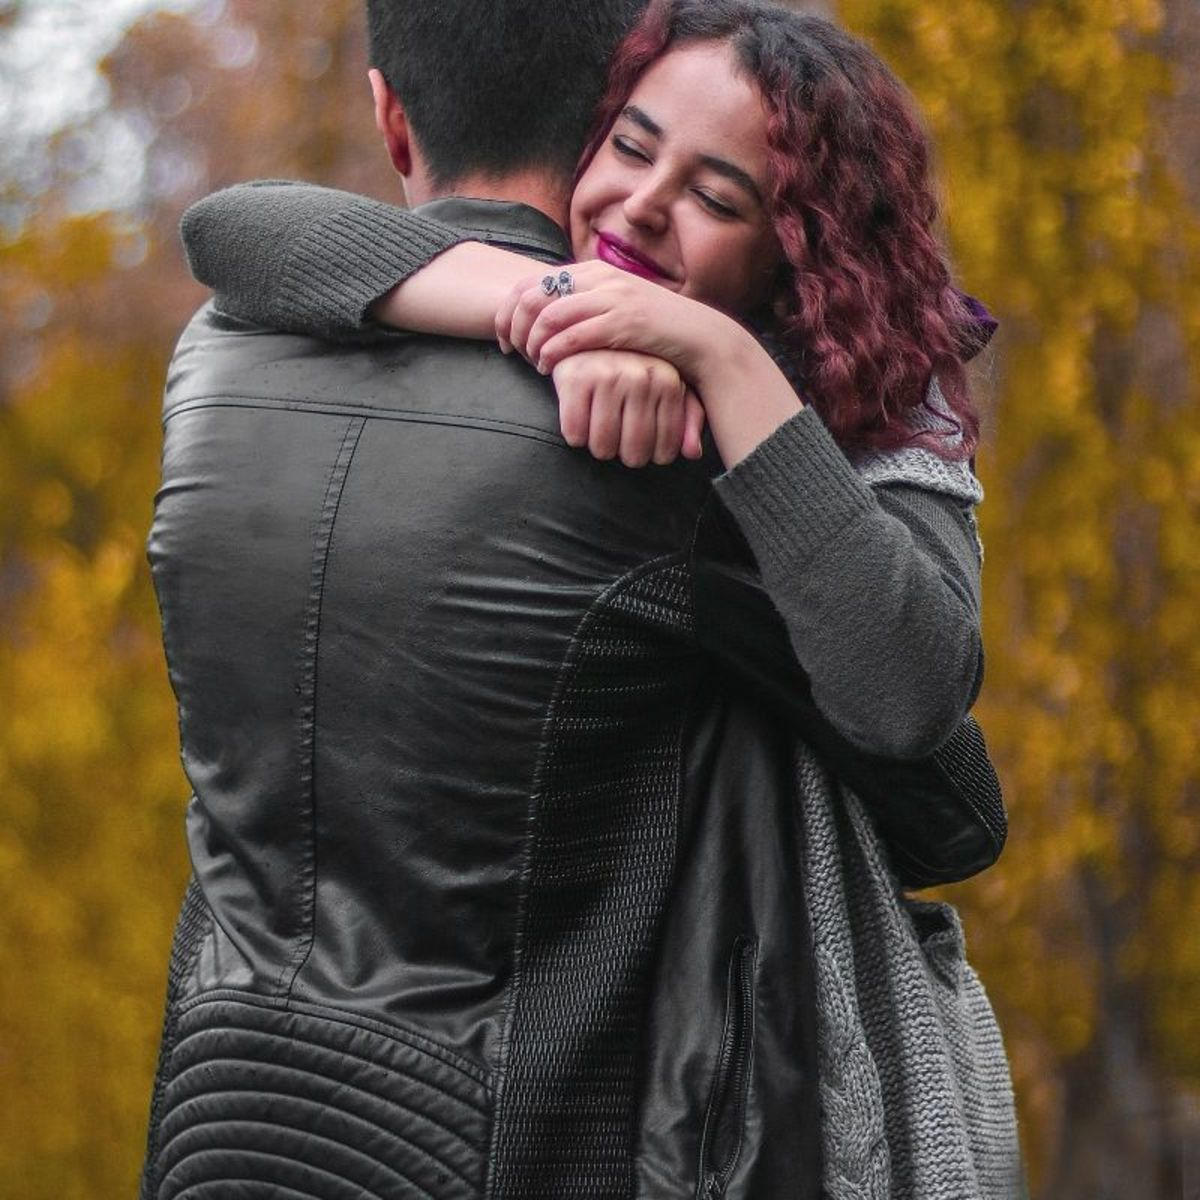 How to Hug a Girl: Tips for Shy Guys to Give Friendly and Romantic